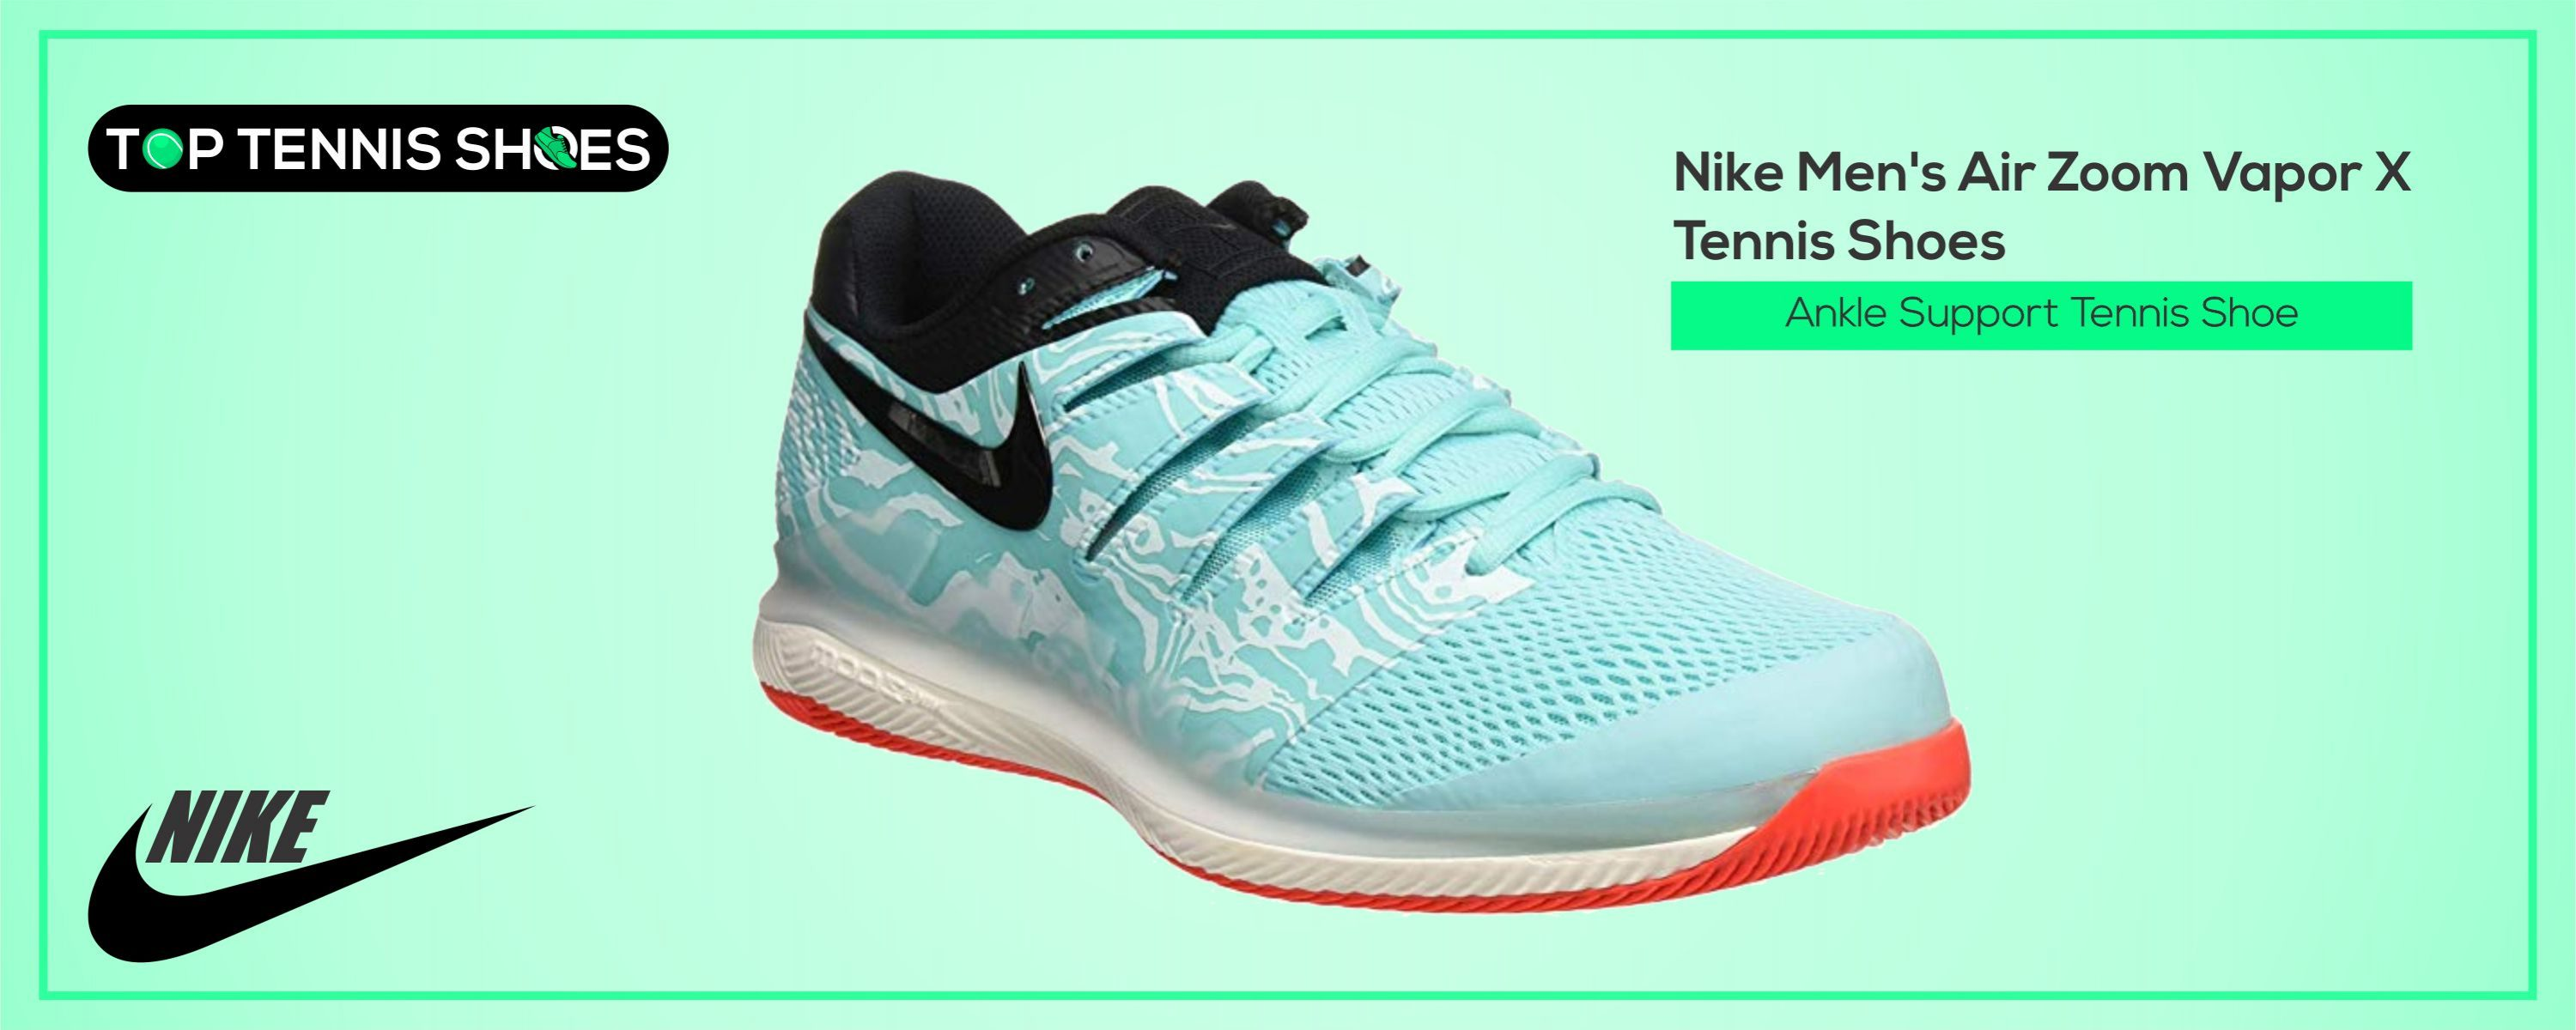 Top 10 Best Tennis Shoes for Ankle